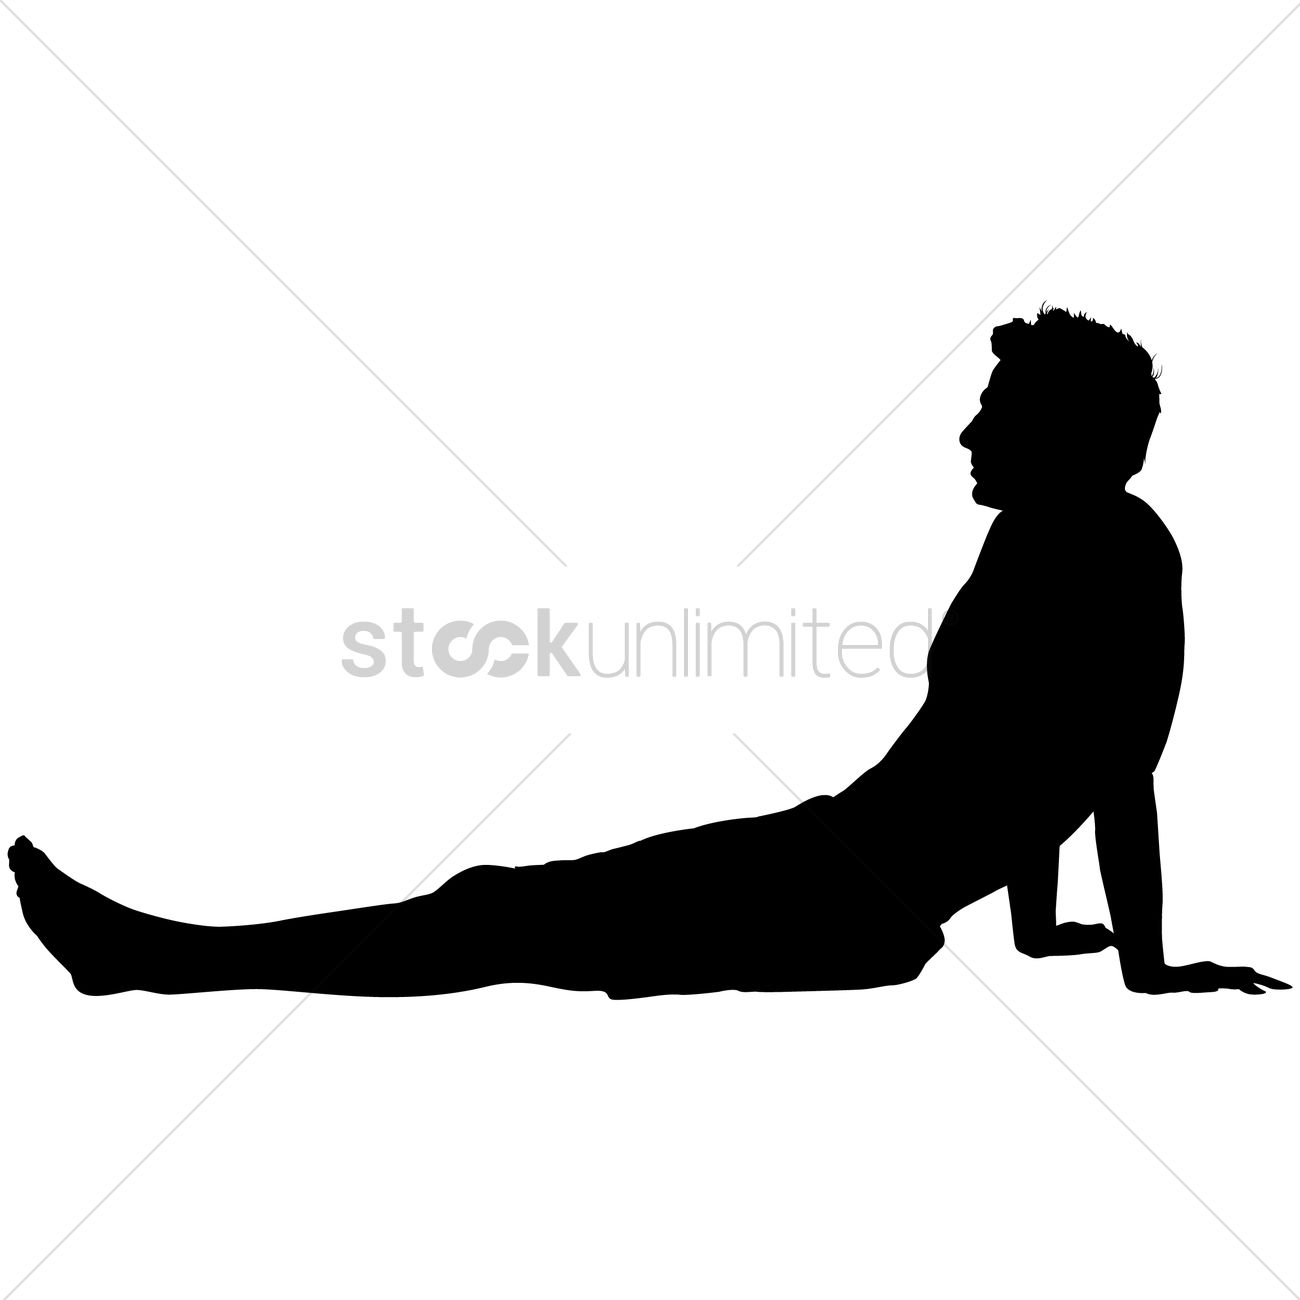 Silhouette of a man relaxing Vector Image - 1463443 ...